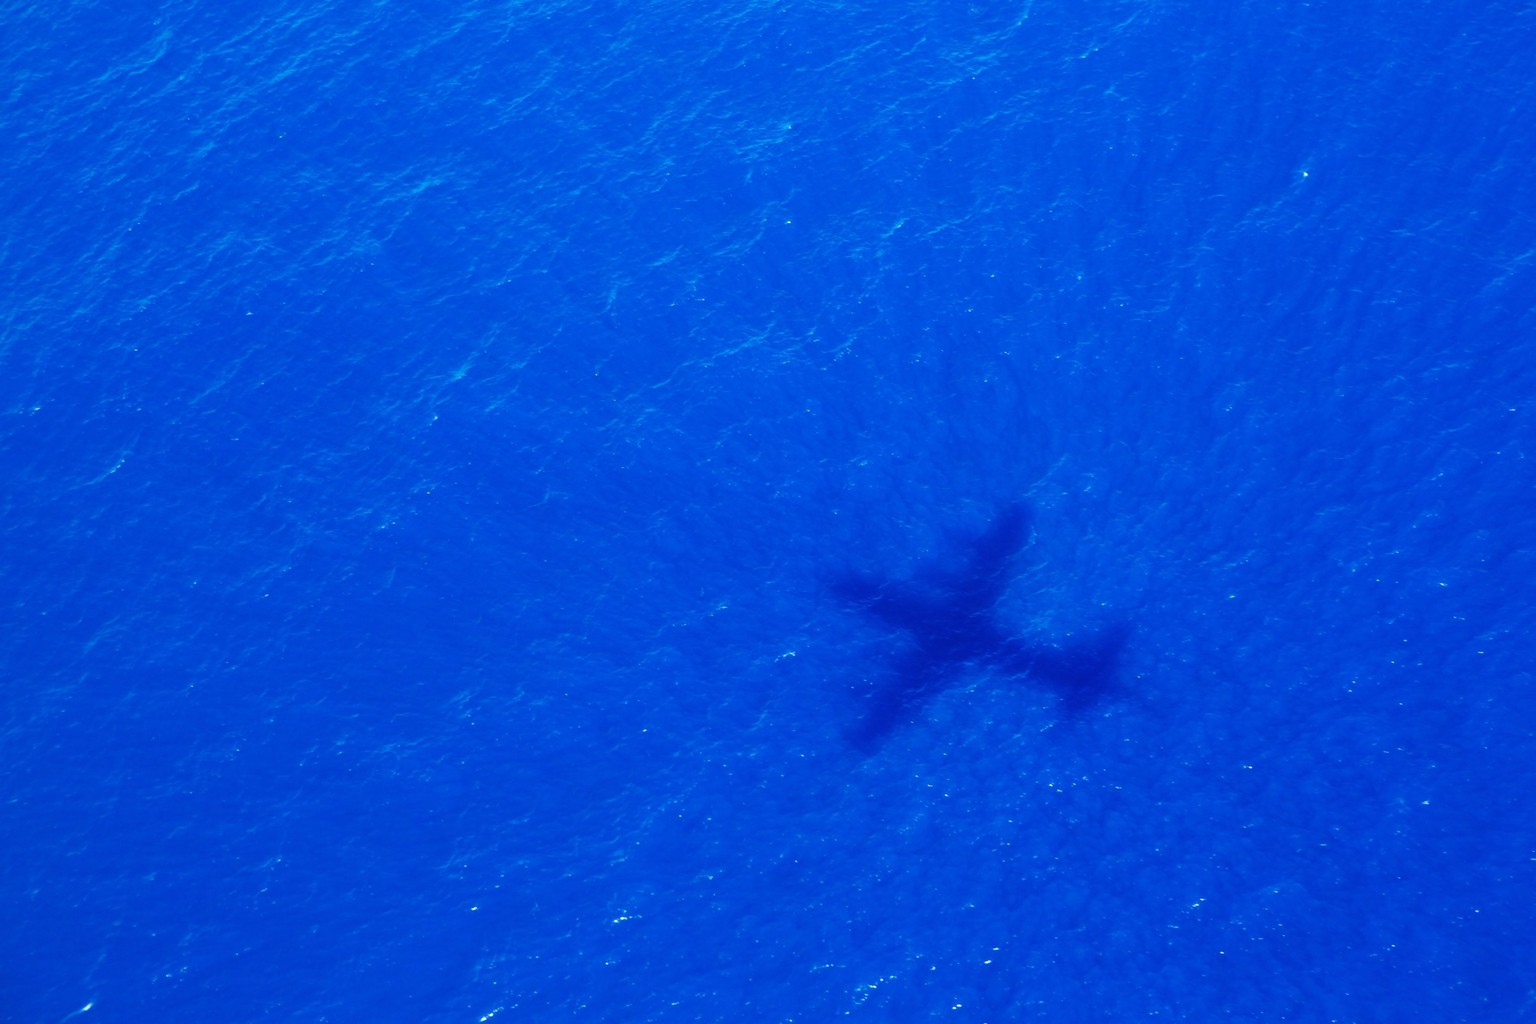 epa04164276 A picture made available 12 April 2014 shows the shadow of a Royal New Zealand Air Force P-3 Orion taking part in the search trying to locate missing Malaysia Airways Flight MH370, cast over the Indian Ocean, 11 April 2014. Their search area was located 1,800km North West of Perth and they were tasked with flying at 800ft to visually search for aircraft debris. The search for a missing Malaysia Airlines jet in the Indian Ocean kept its intensity on 12 April despite no new acoustic signals for three days. Ten planes and 14 ships were out looking for traces of MH370, which went missing more than a month ago after takeoff from Kuala Lumpur en route Beijing with 239 people on board.  EPA/RICHARD WAINWRIGHT / POOL AUSTRALIA AND NEW ZEALAND OUT